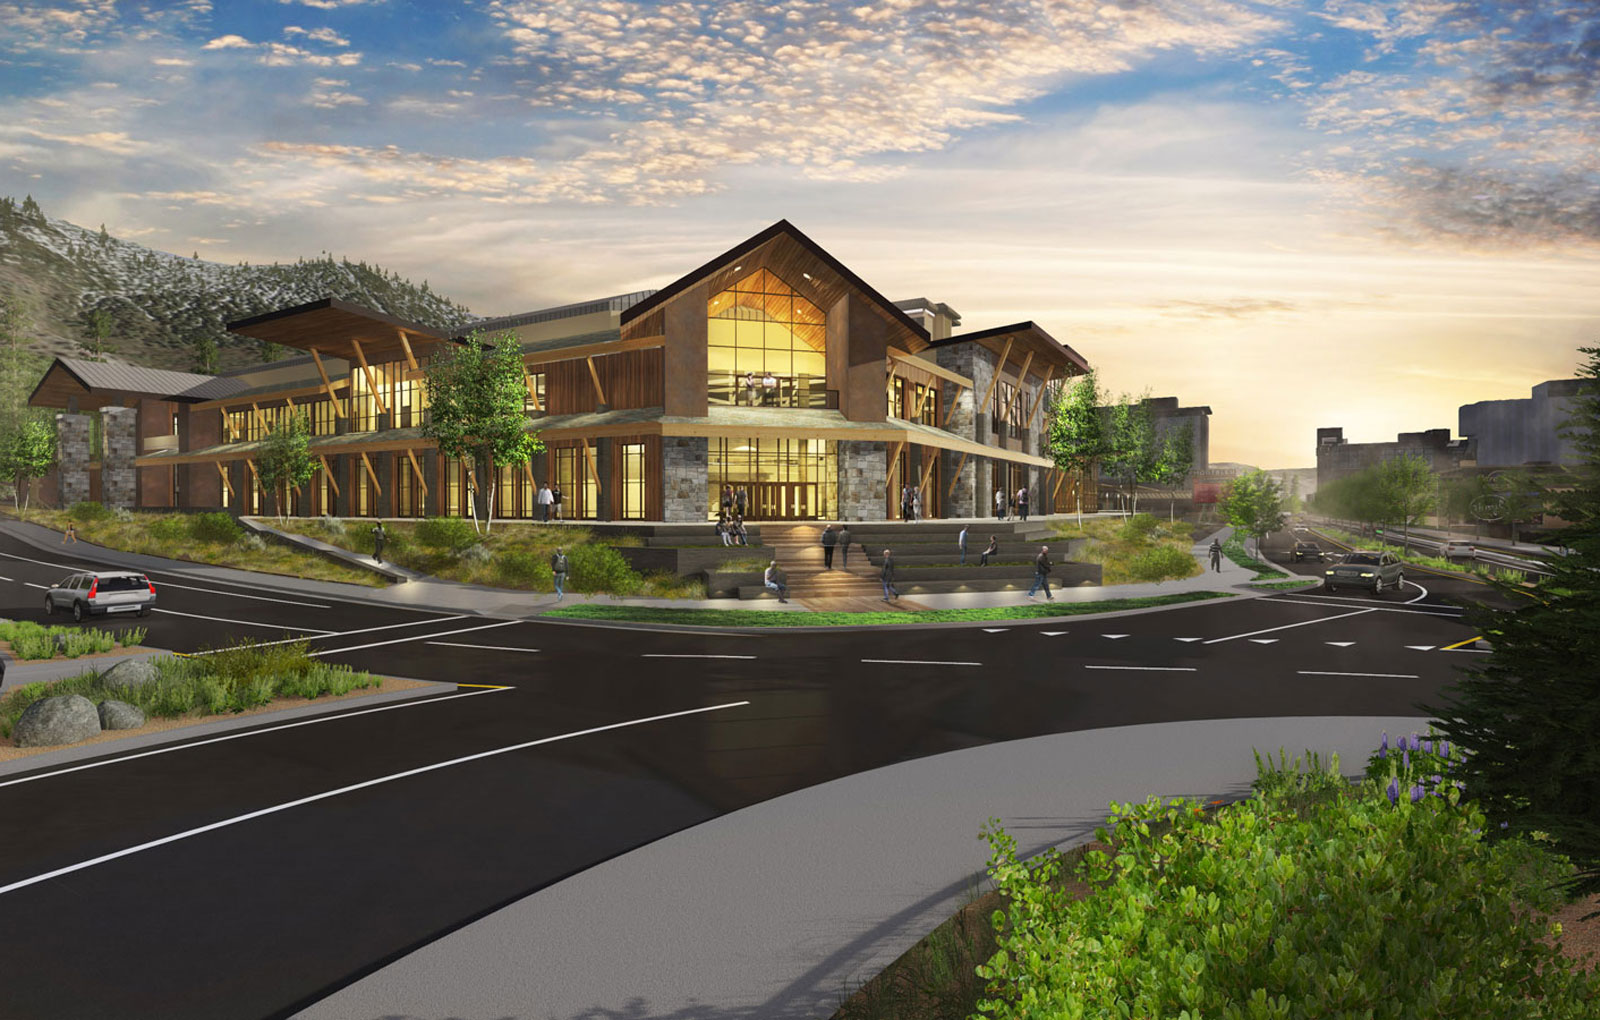 tahoe south event center architectural rendering